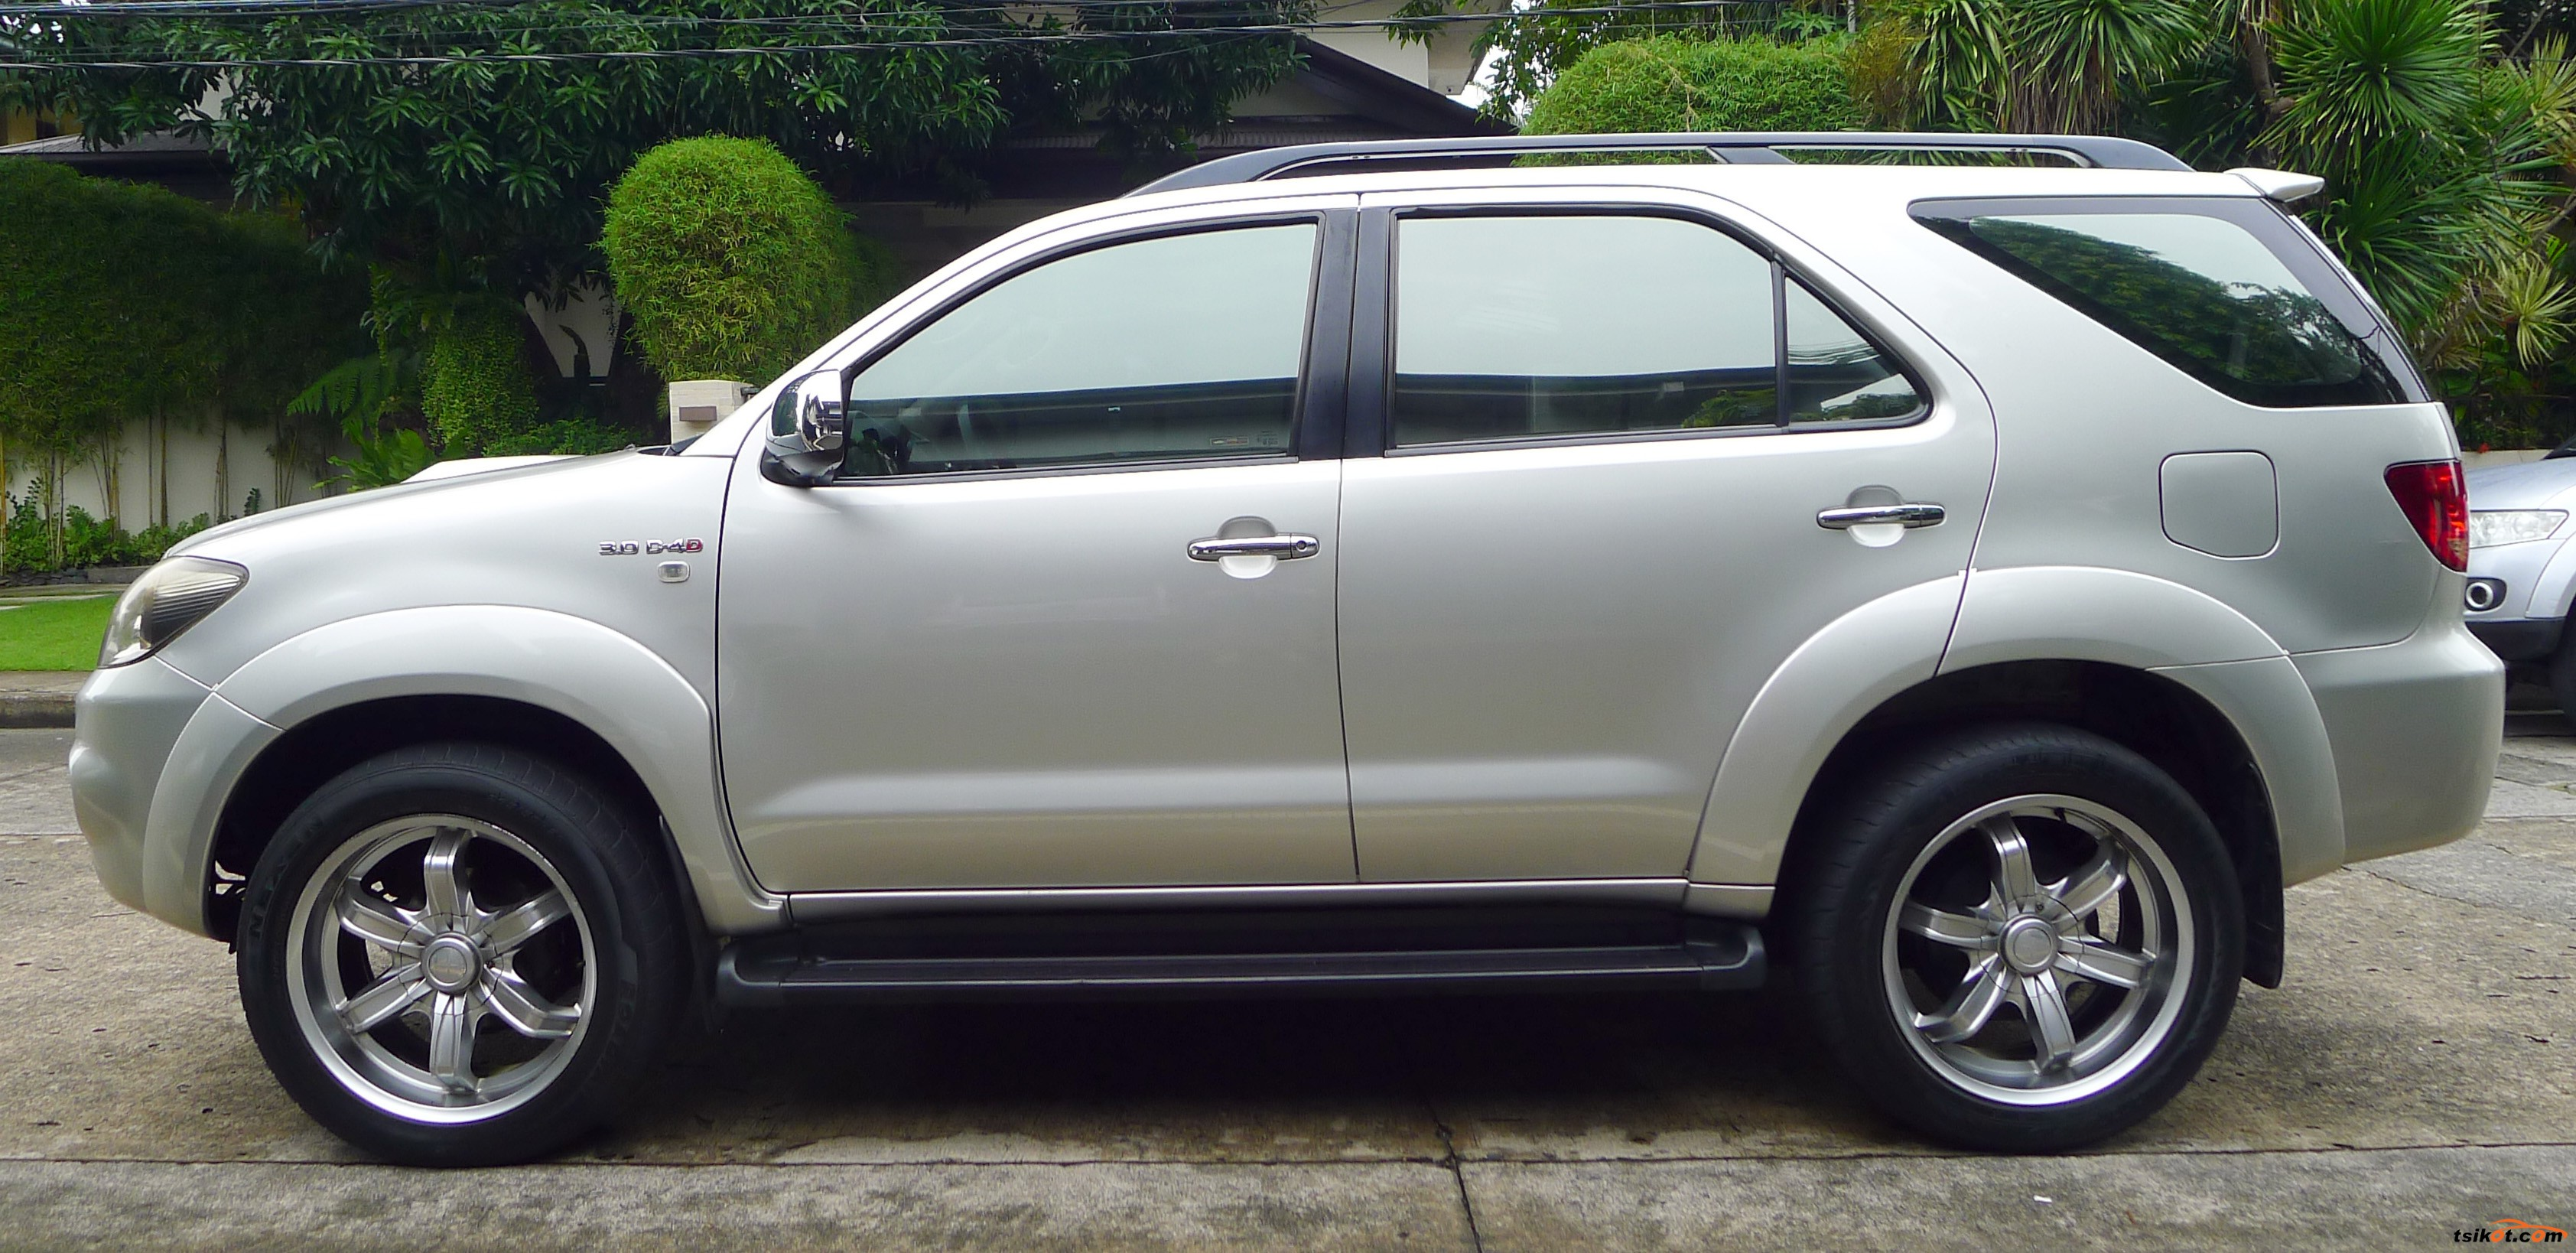 Toyota Fortuner 2005 Car For Sale Metro Manila